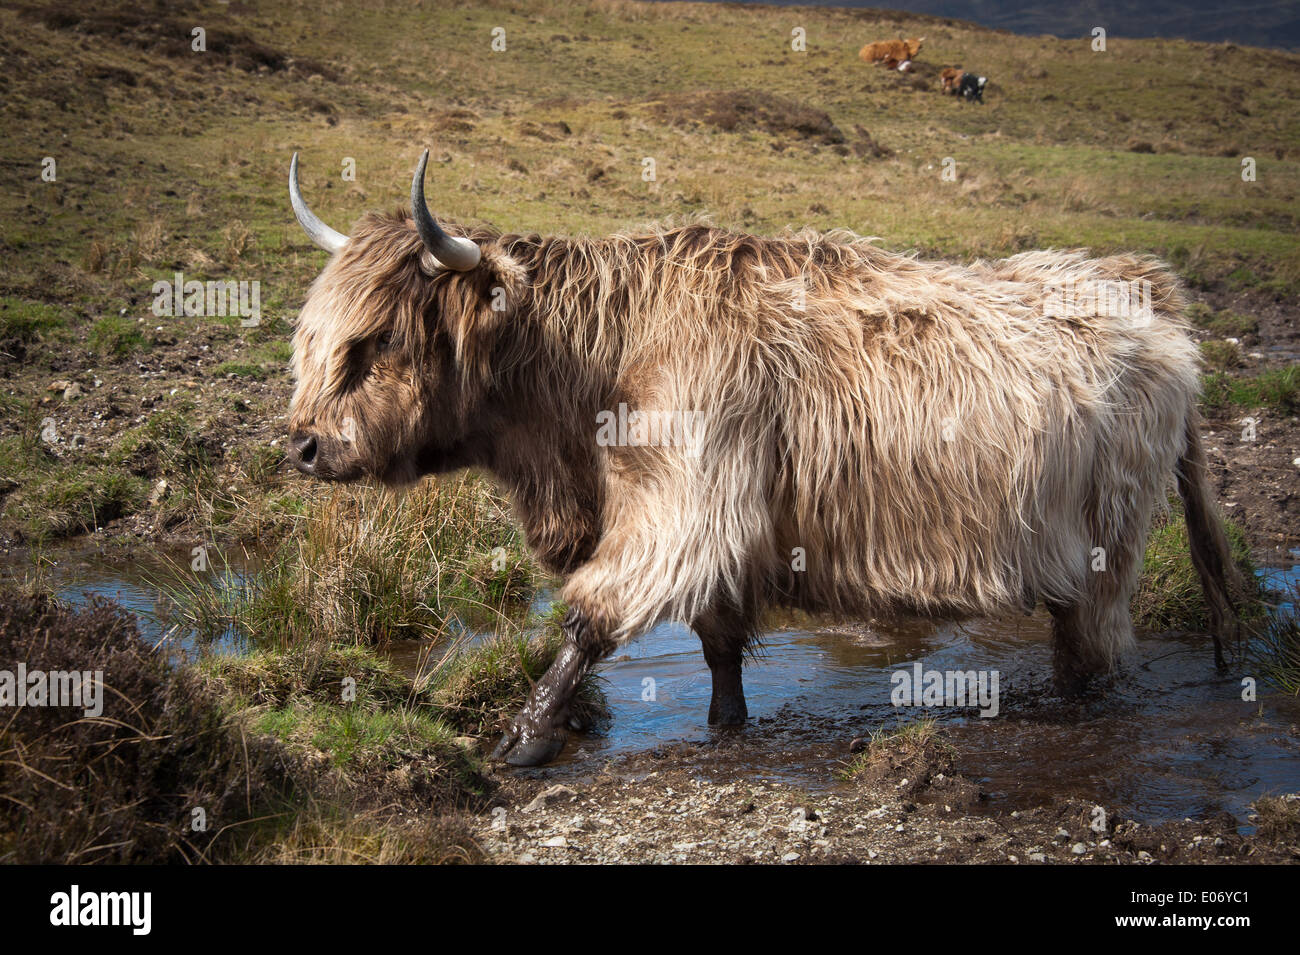 Highland cow in mud, Scotland - Stock Image